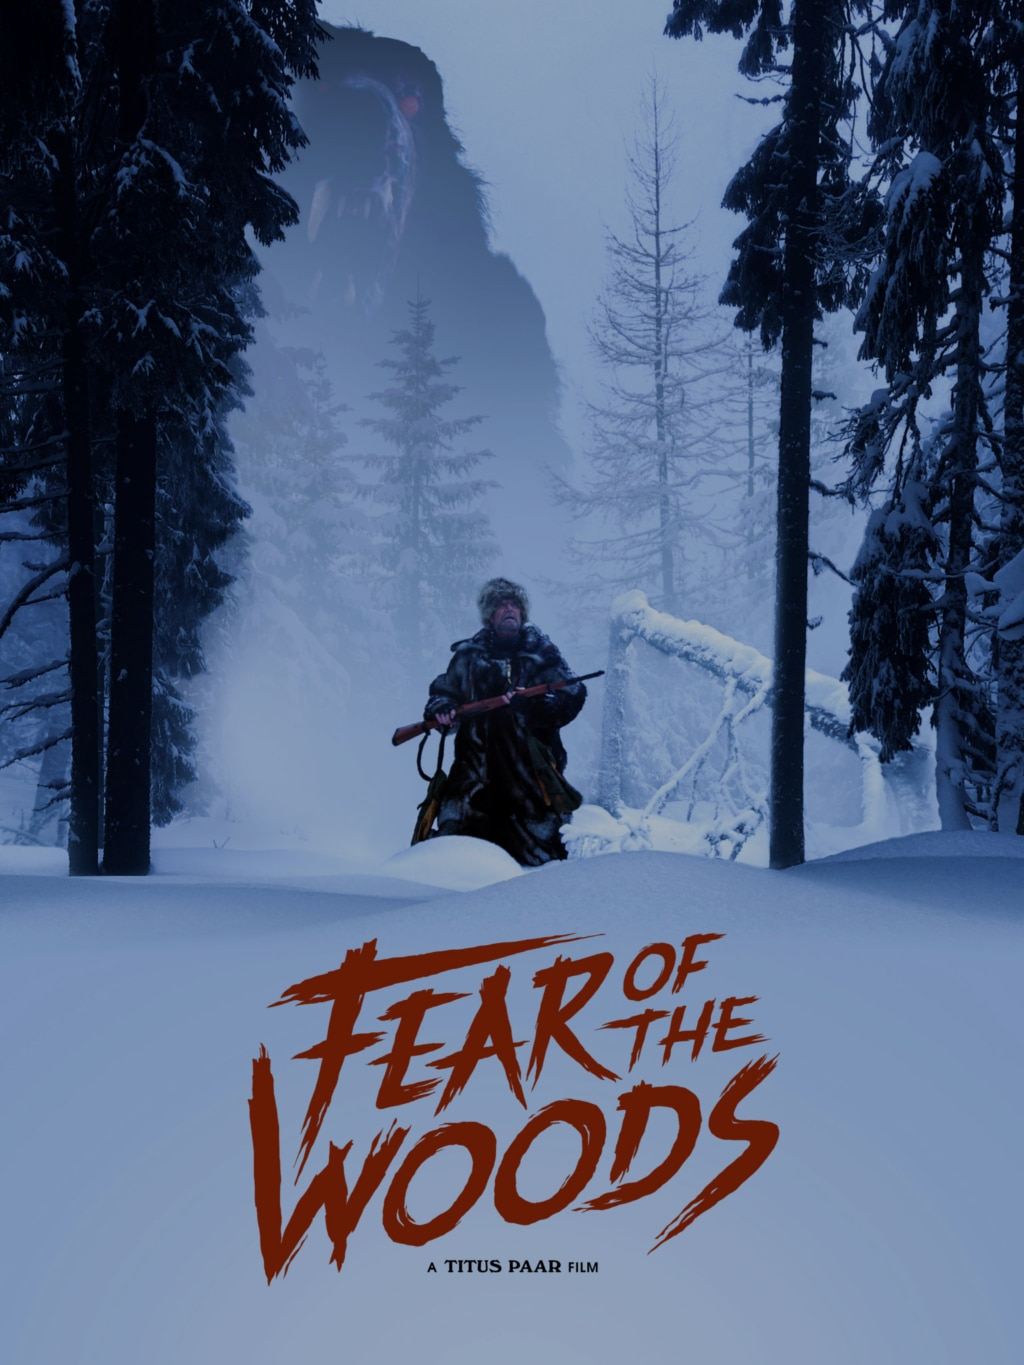 Fear of the Woods Poster 1024x1365 - Trailer: Real Animatronics (No CGI!) in Survival Horror FEAR OF THE WOODS